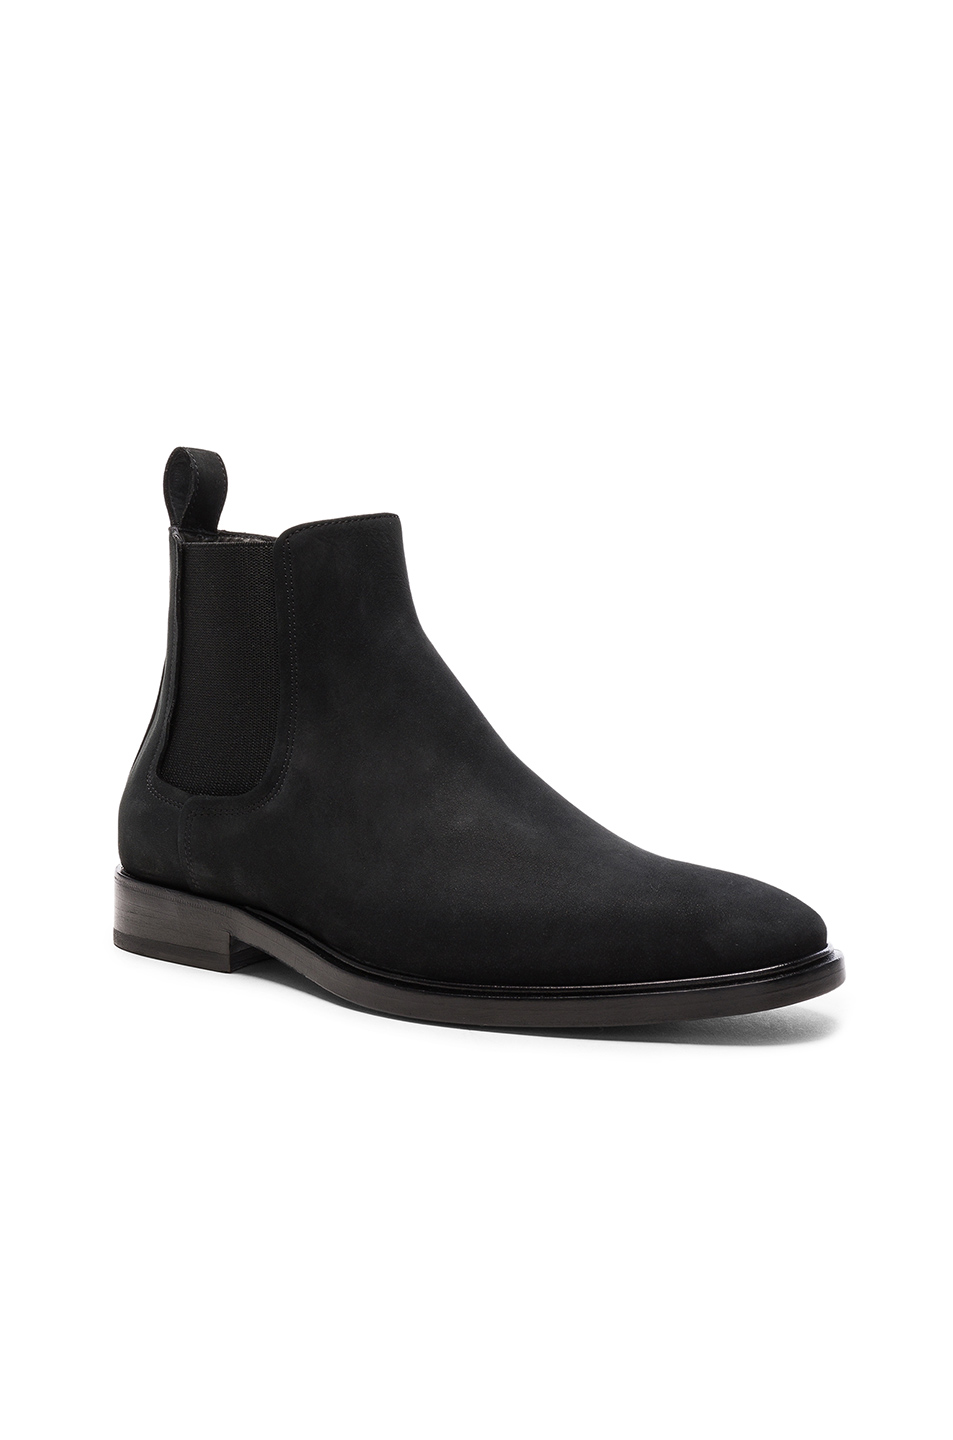 Lanvin Smooth Leather Chelsea Boots in Black